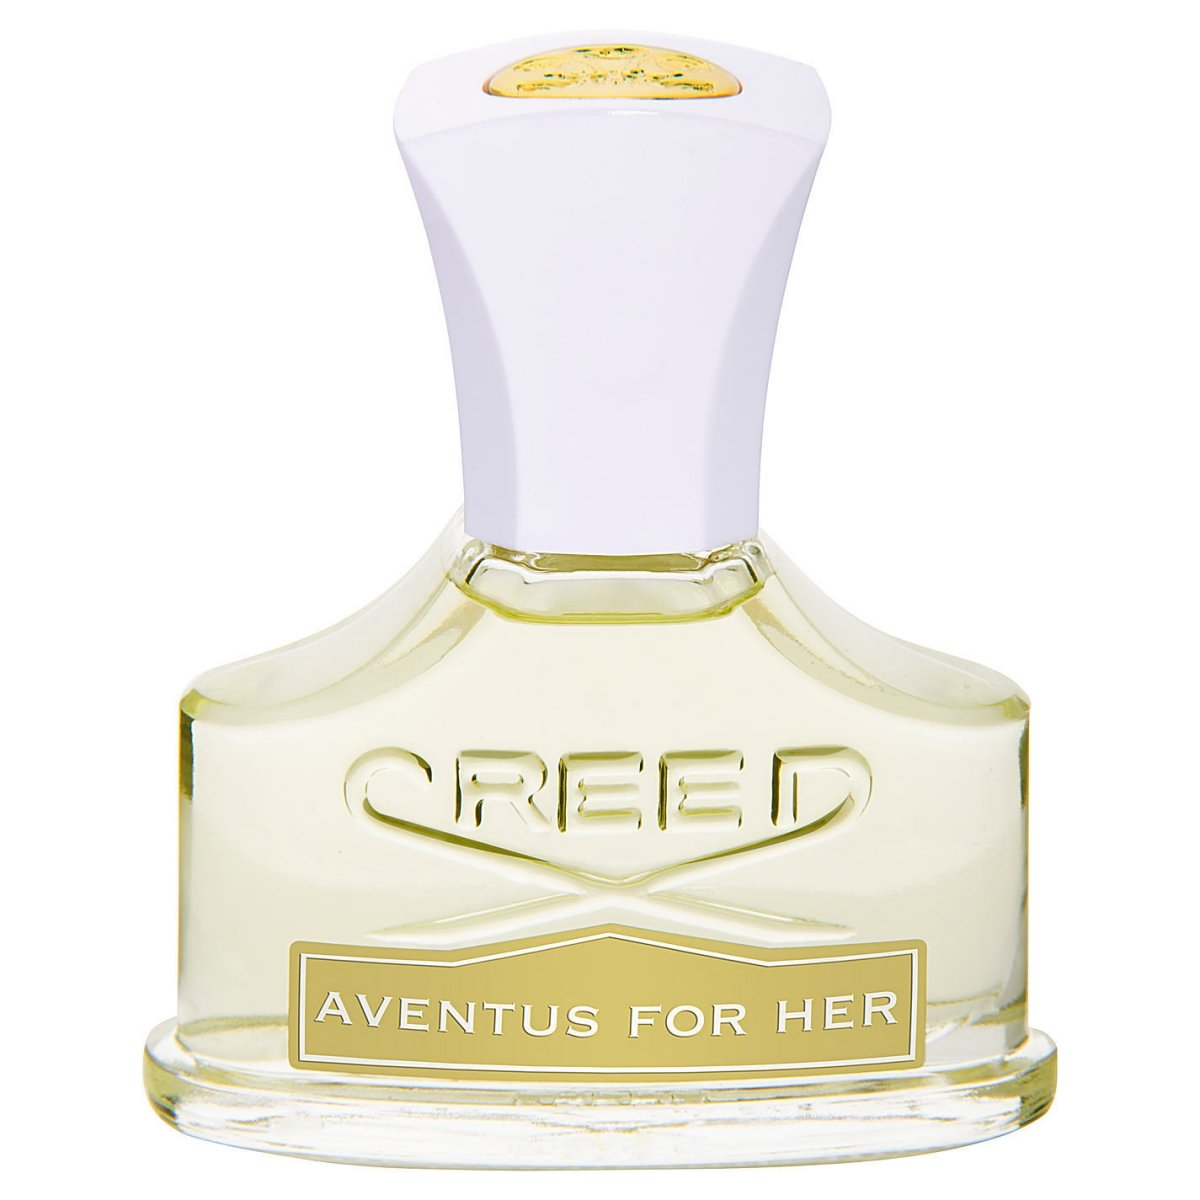 Creed Aventus For Her Reviews And Rating